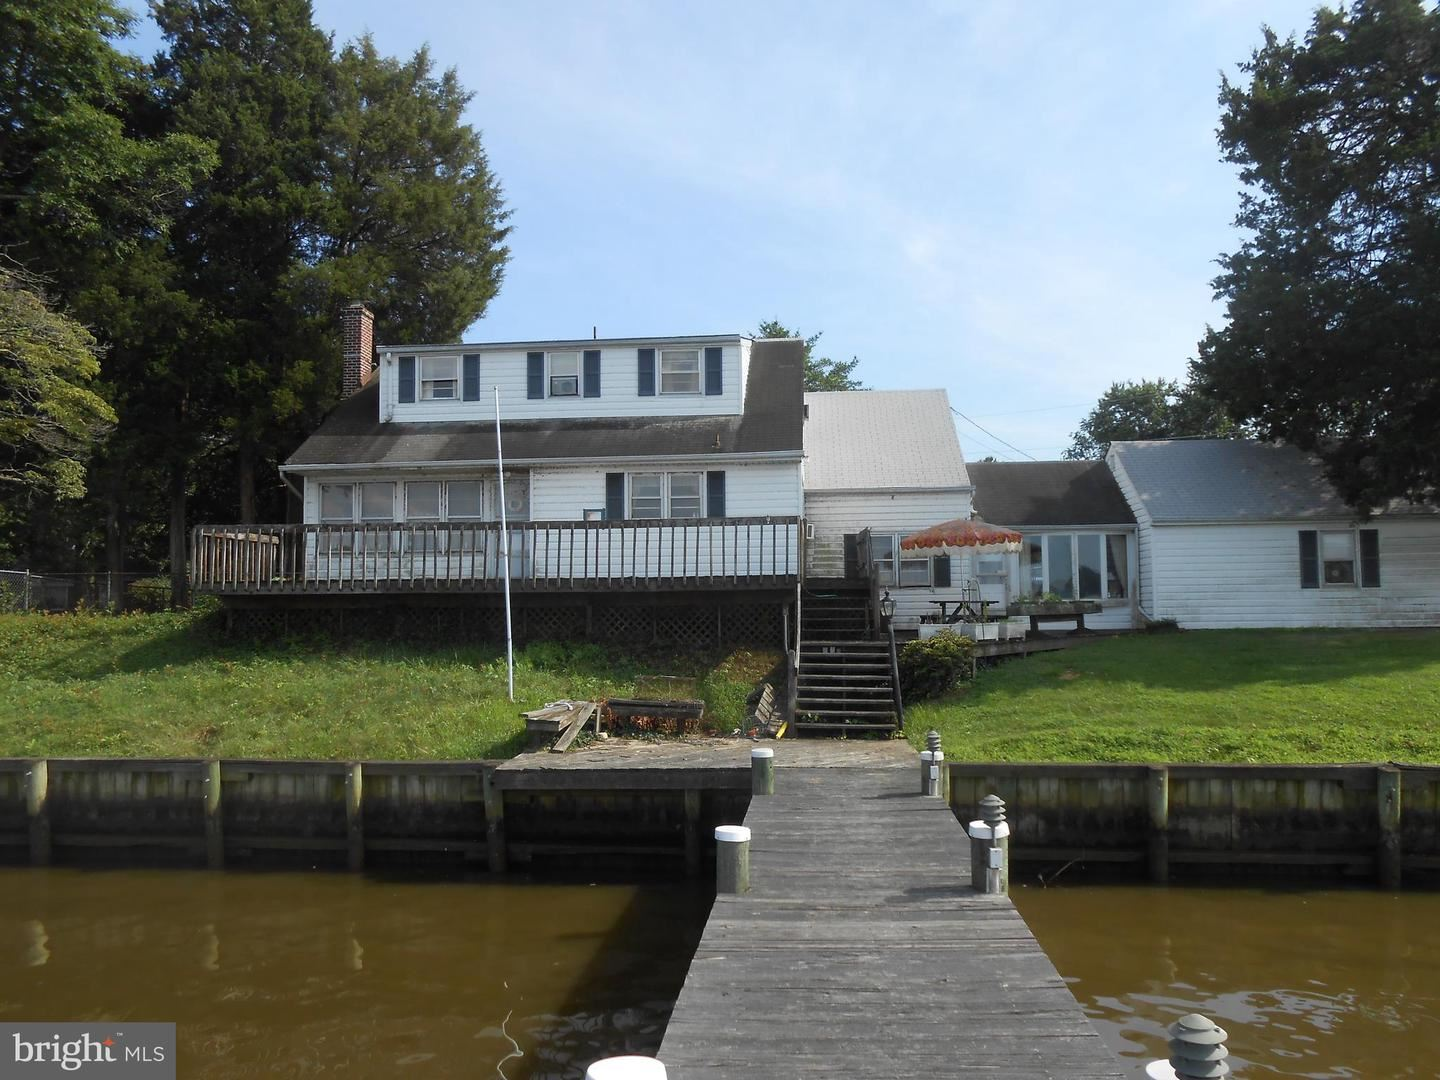 275 RIVER RD, Elkton, MD 21921 - MLS#: MDCC170340